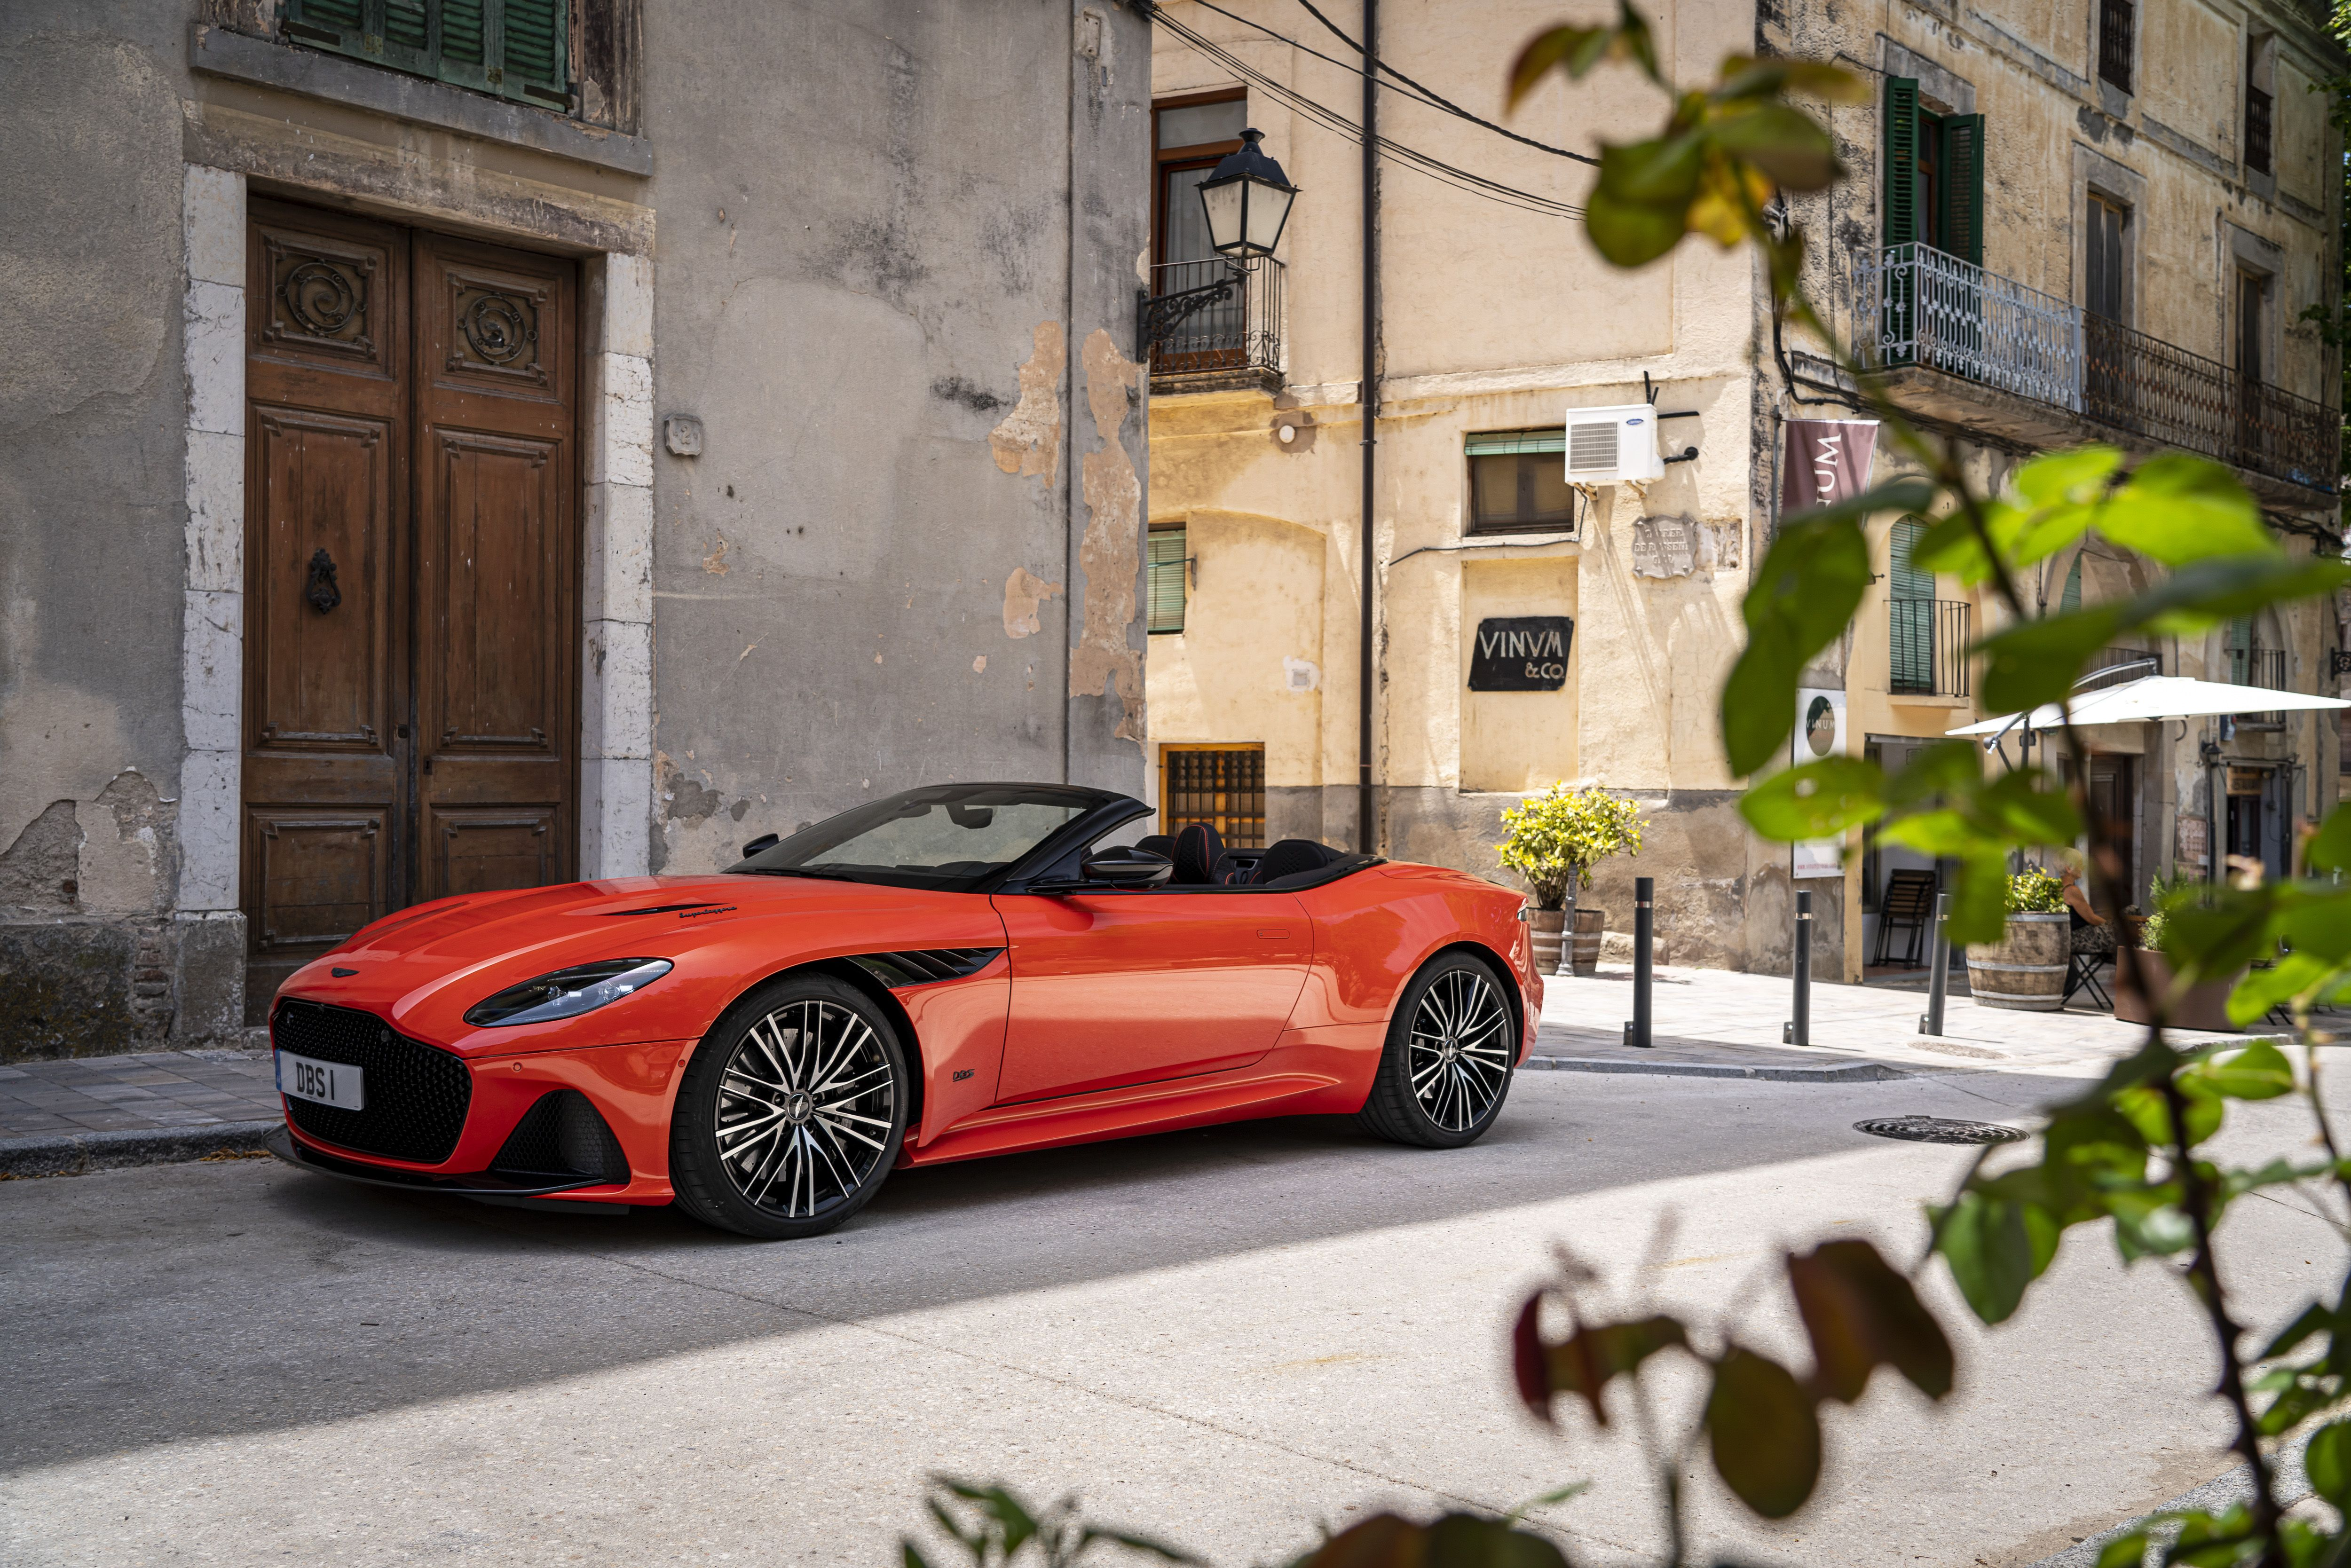 2020 Aston Martin Dbs Superleggera Review Pricing And Specs